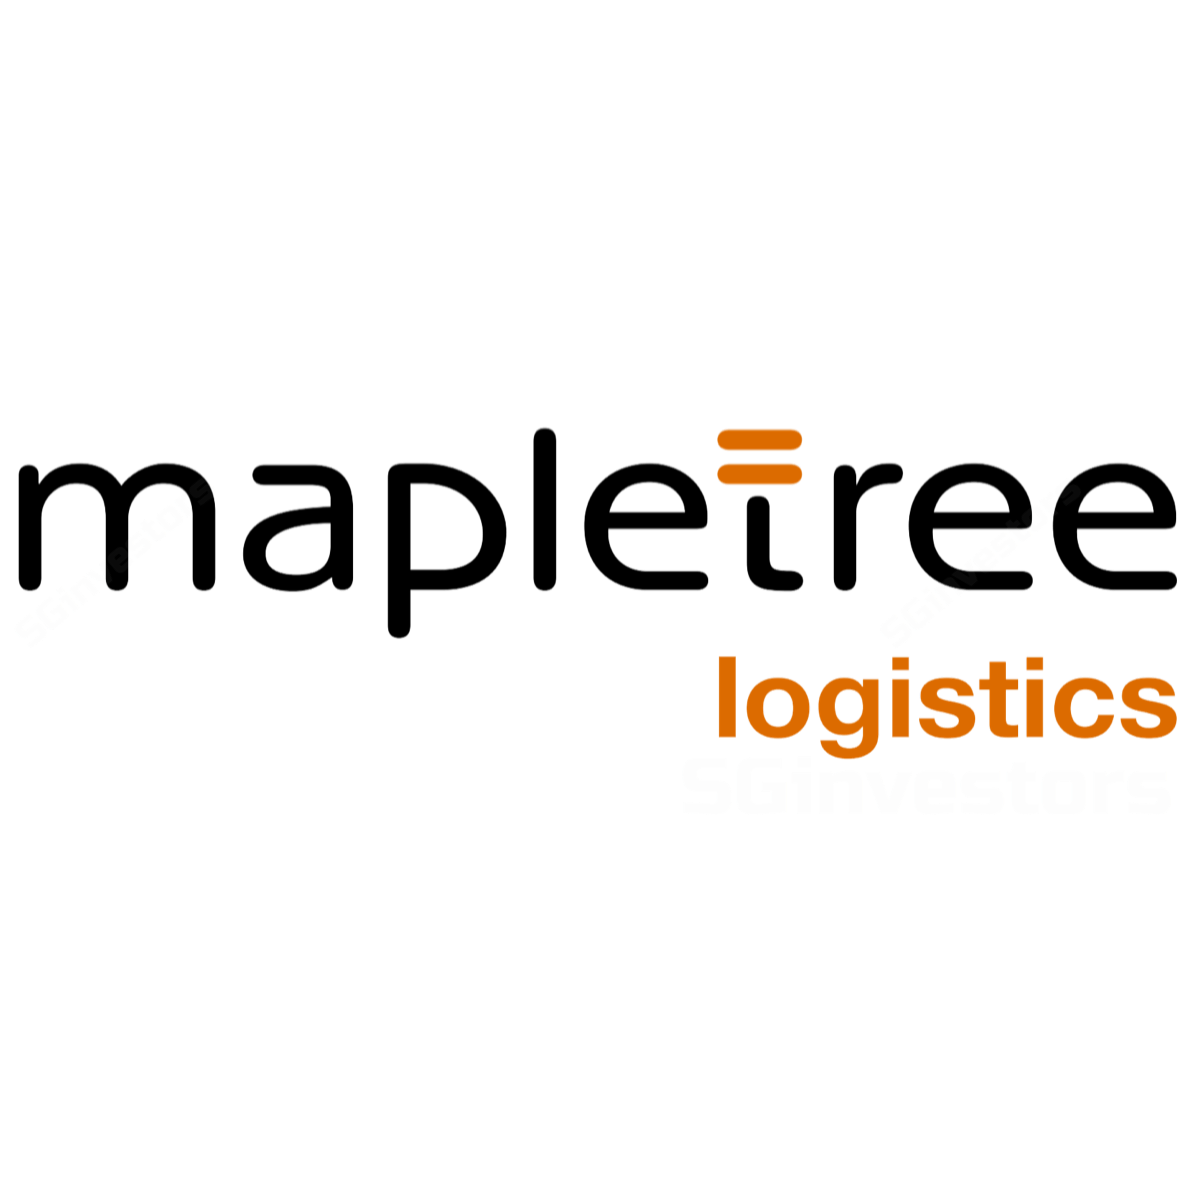 Mapletree Logistics Trust - RHB Invest 2017-12-27: Ceasing Coverage